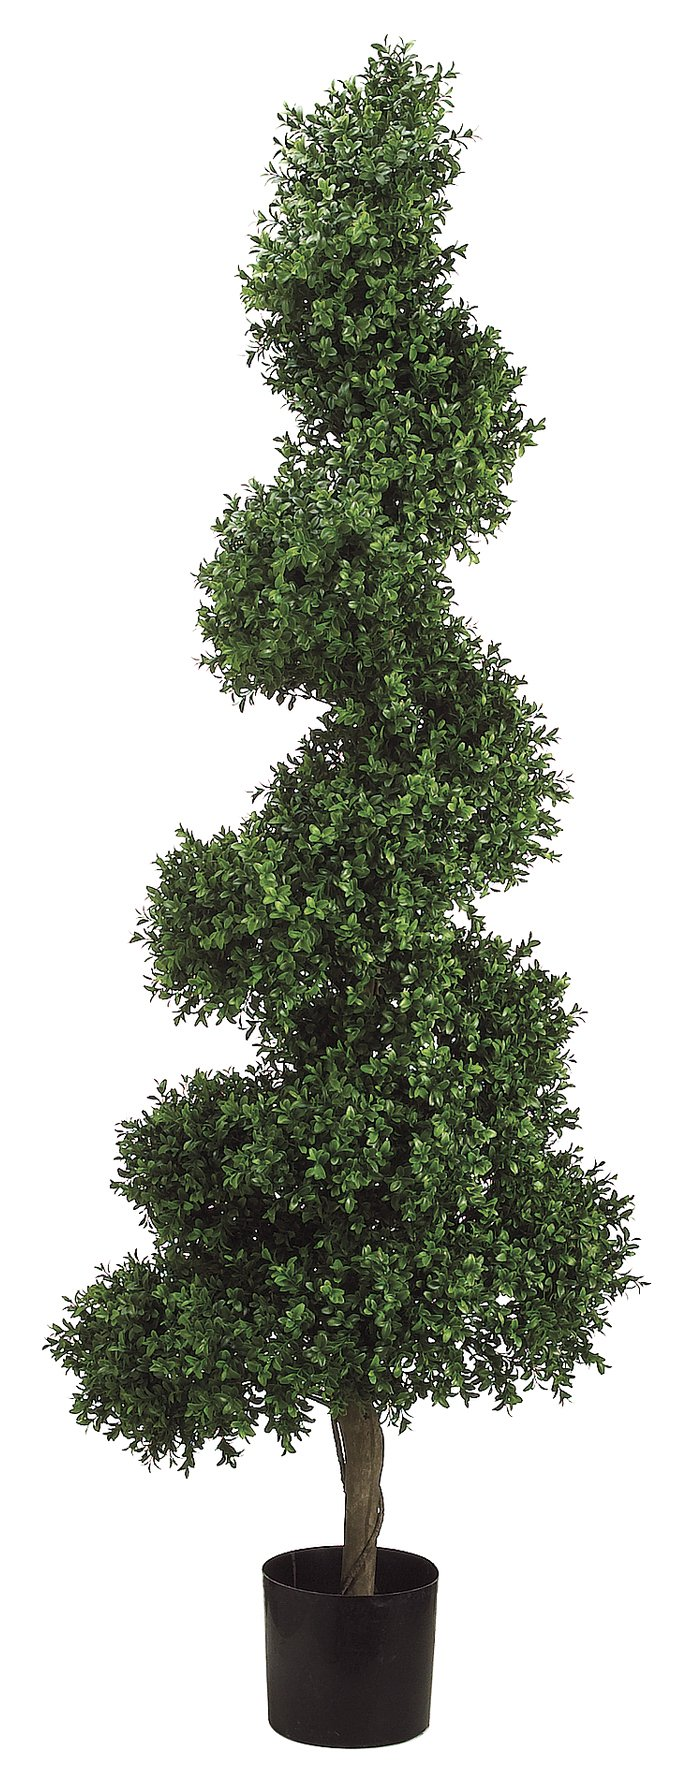 Silk Decor 5.5-Feet Spiral Boxwood Topiary Plant, Green/Two-tone